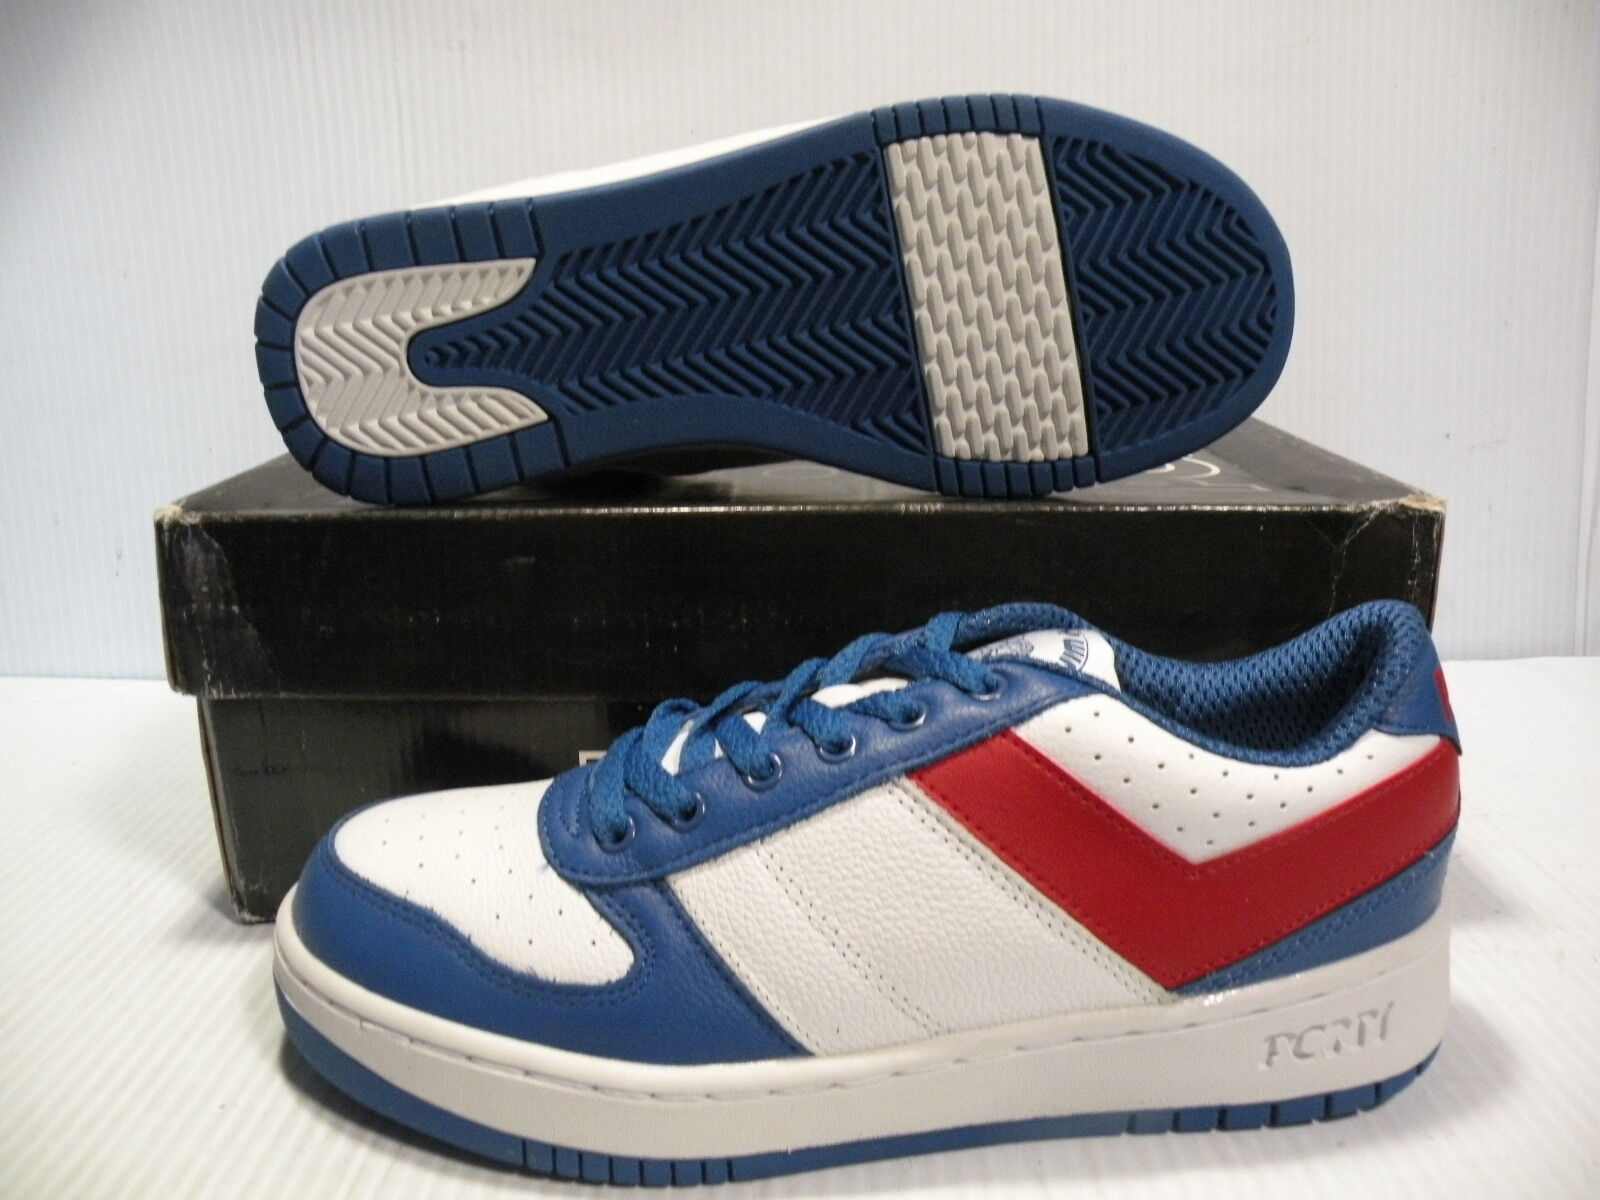 PONY CITY WINGS LOW CHEVRON SNEAKERS MEN SHOES WHITE/BLUE/RED SIZE 7.5 NEW